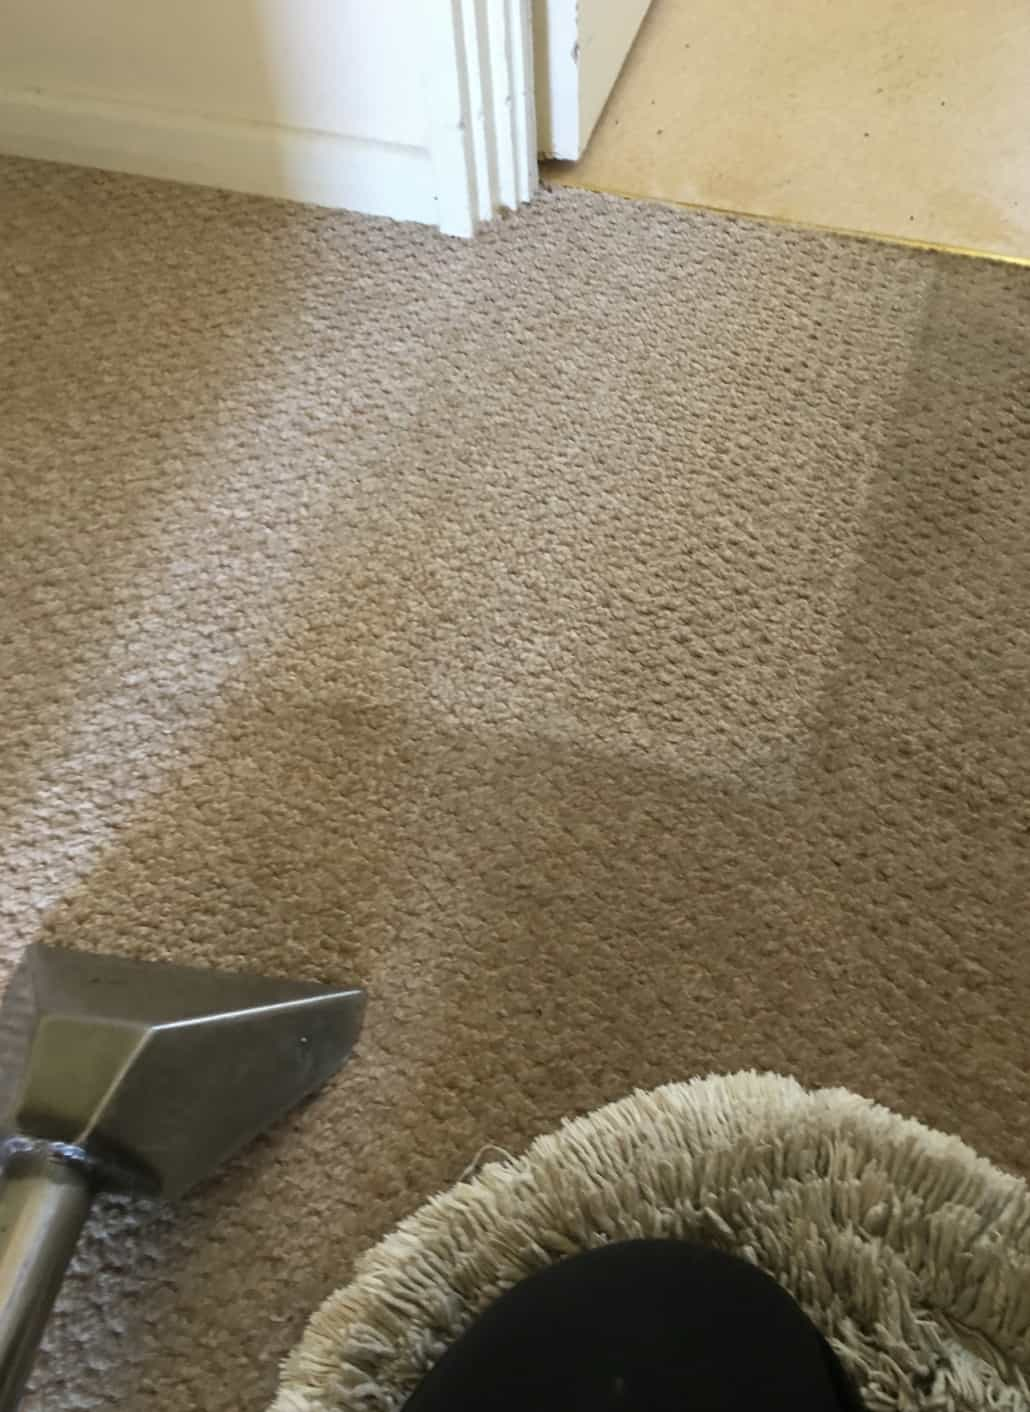 Carpet Cleaning Before & After Photos 10